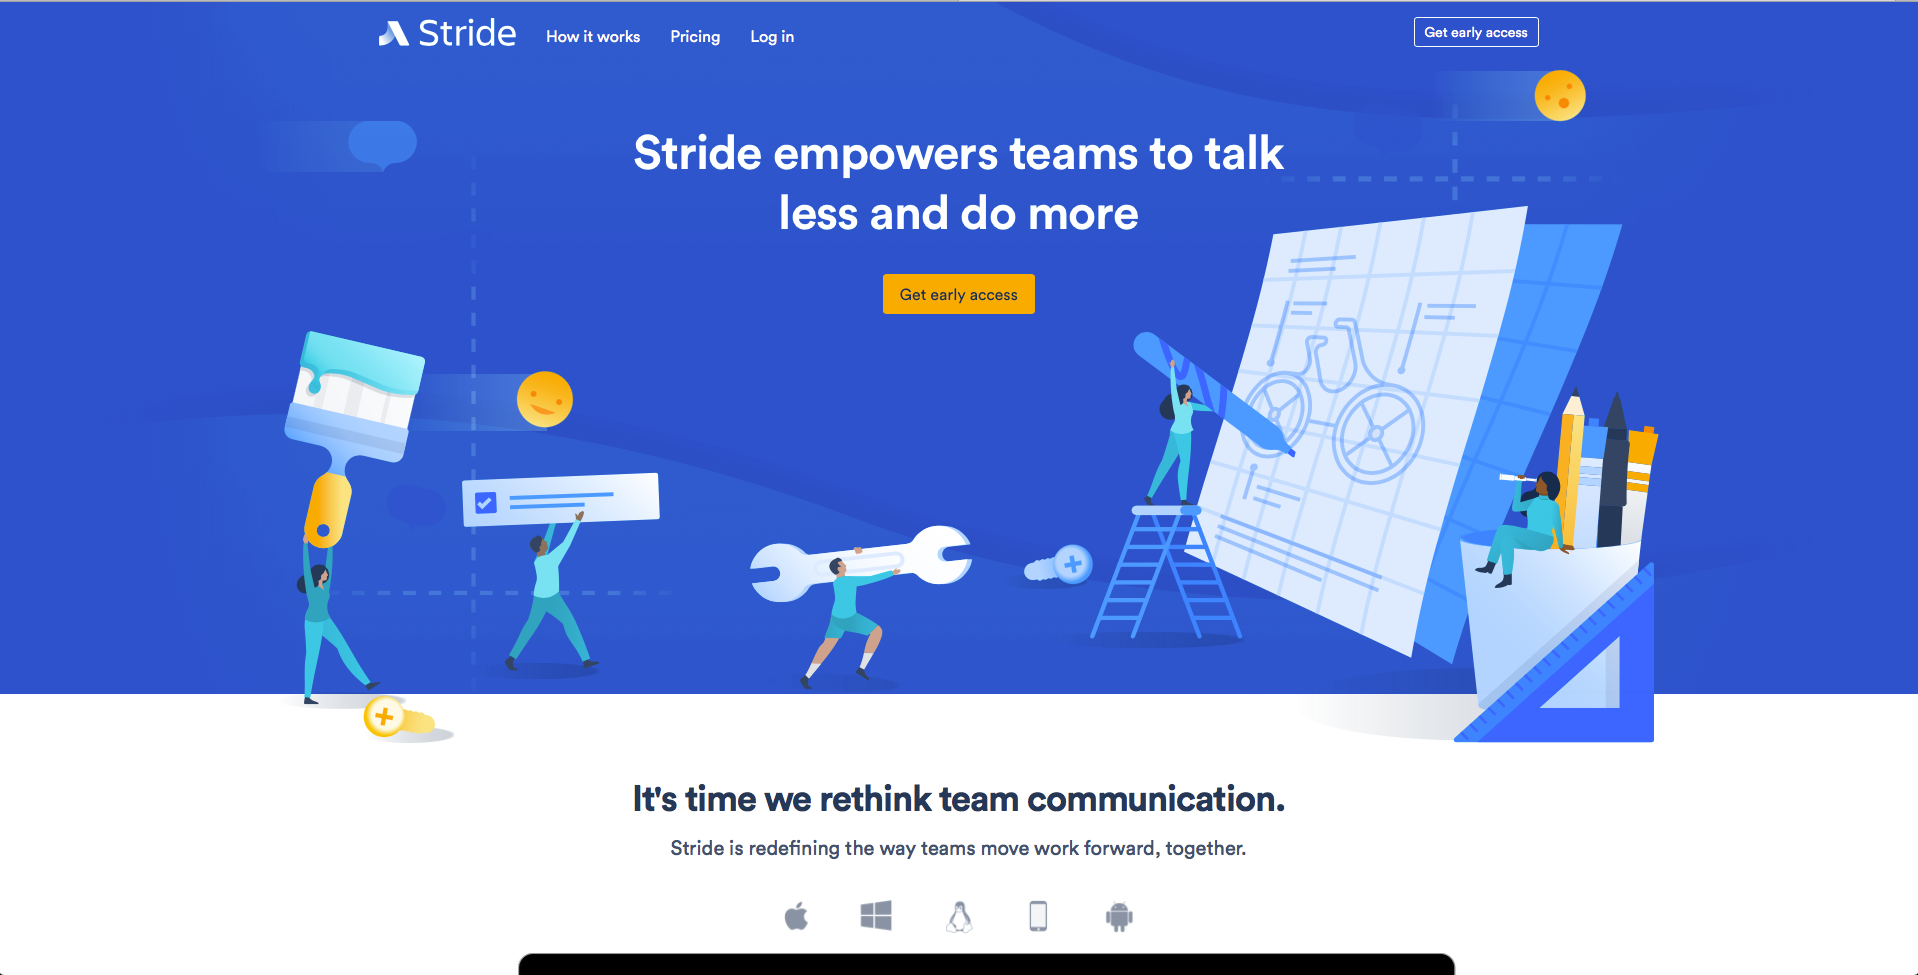 An image of Stride.com's illustrated header